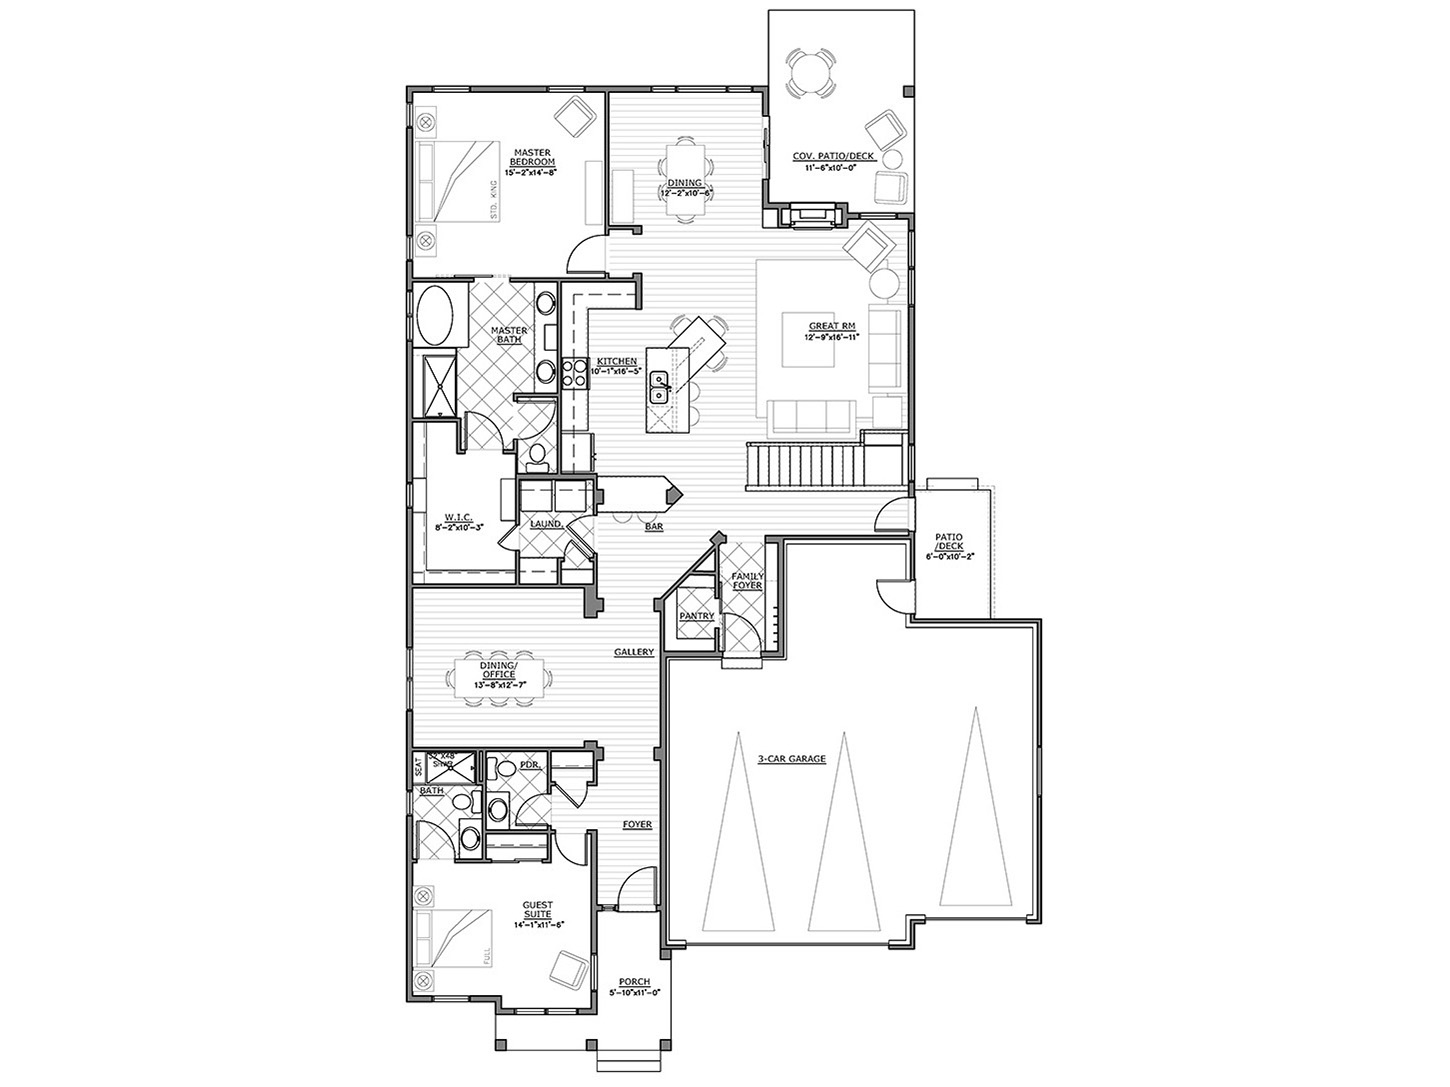 03-evergreen-fort_collins-main_level_floor_plan-new_home